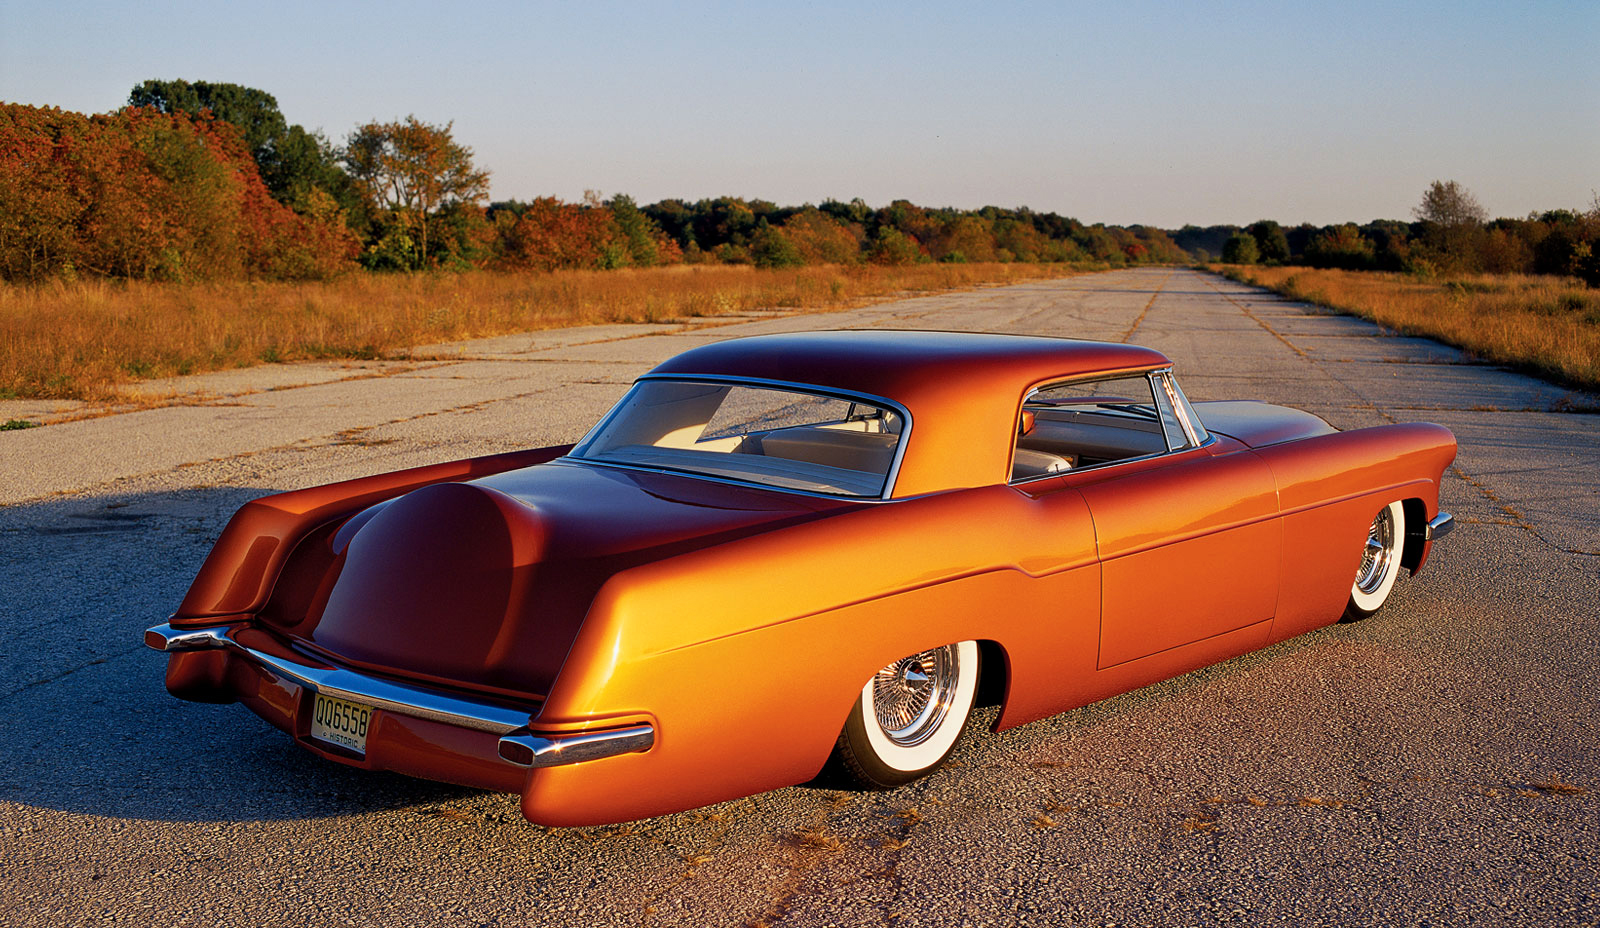 Lowrider Car Hd Wallpaper Lowrider Wallpaper And Background Image 1600x928 Id 266592